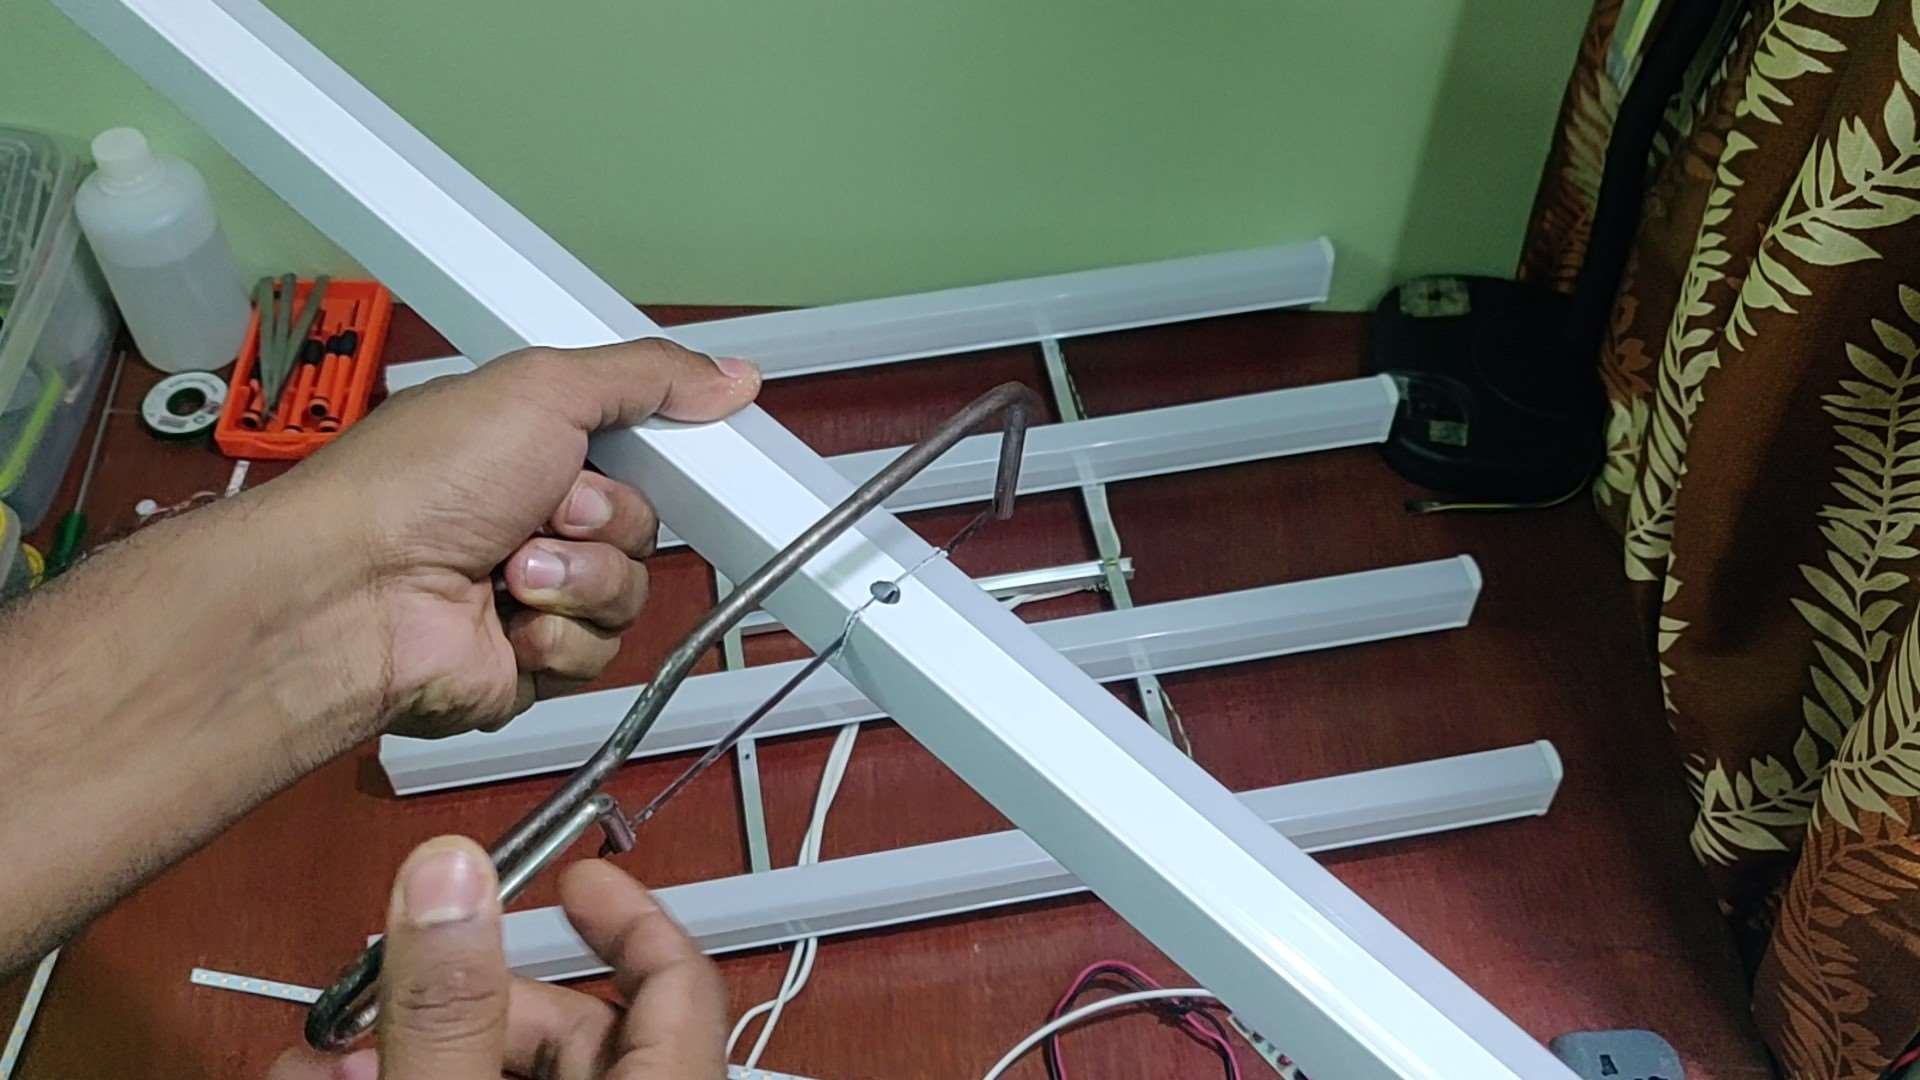 Cutting LED Tube Light Housing using a Hacksaw